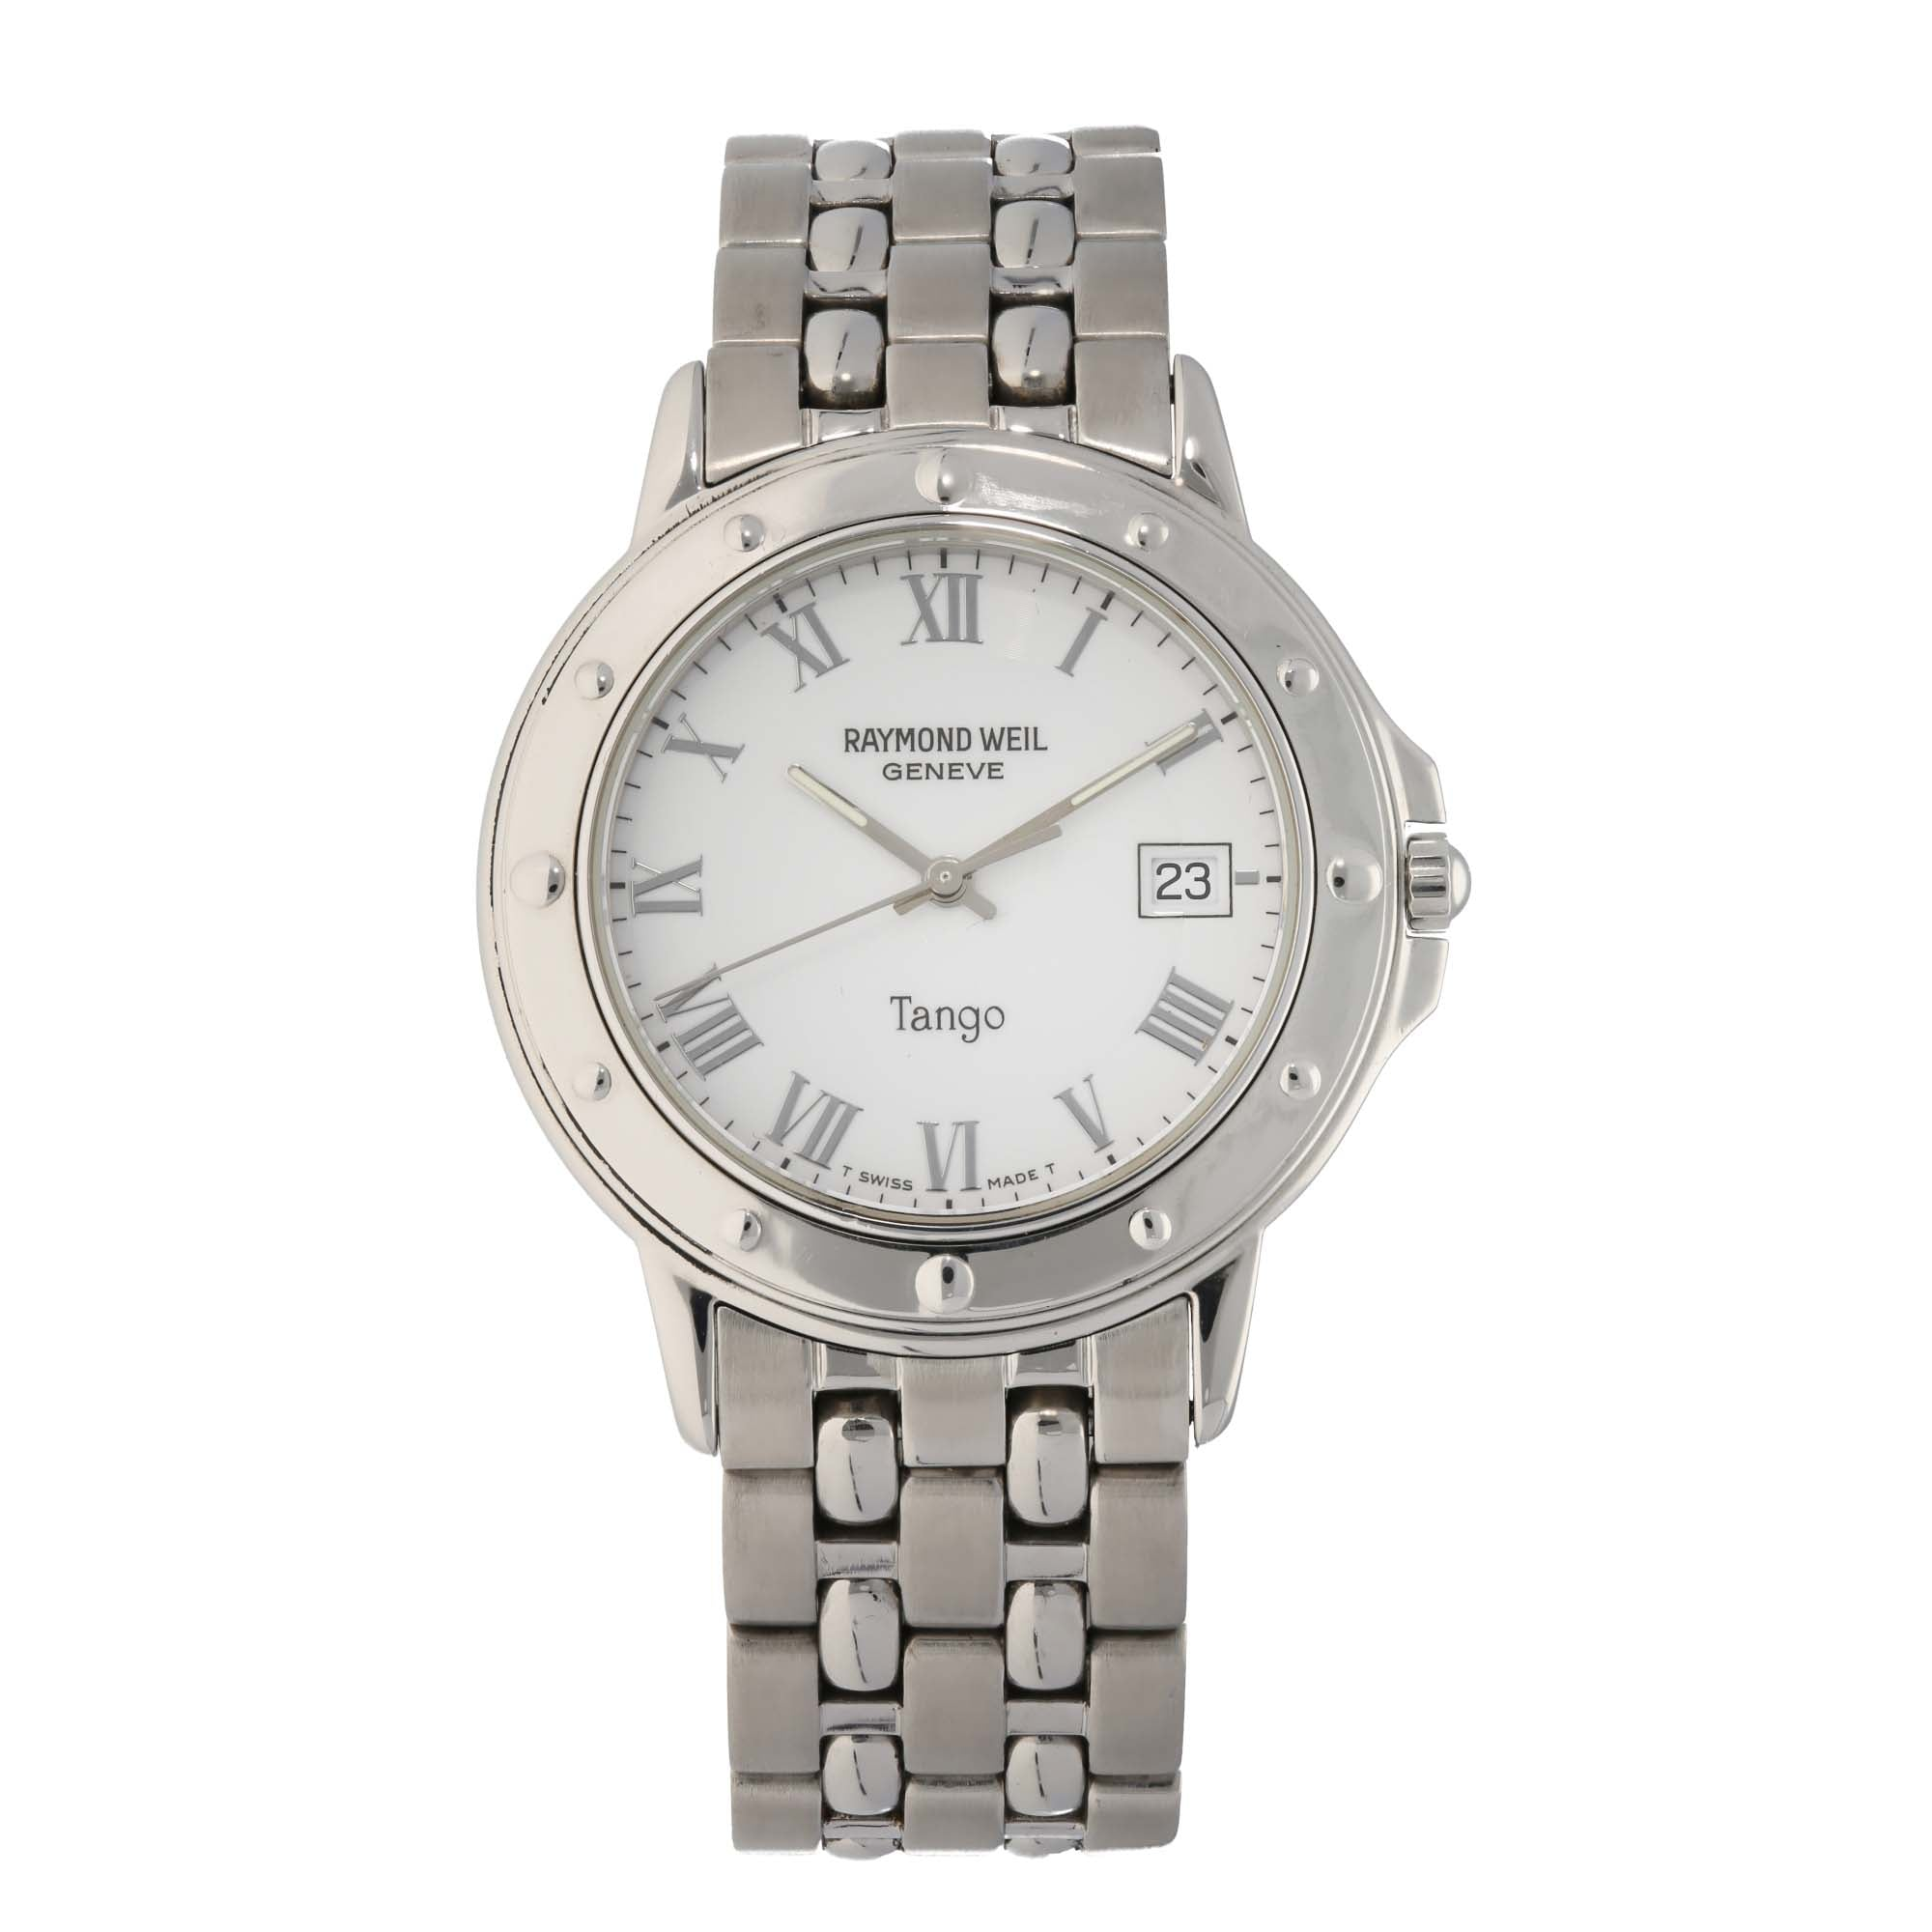 Raymond Weil Tango 5560 36mm Stainless Steel Mens Watch